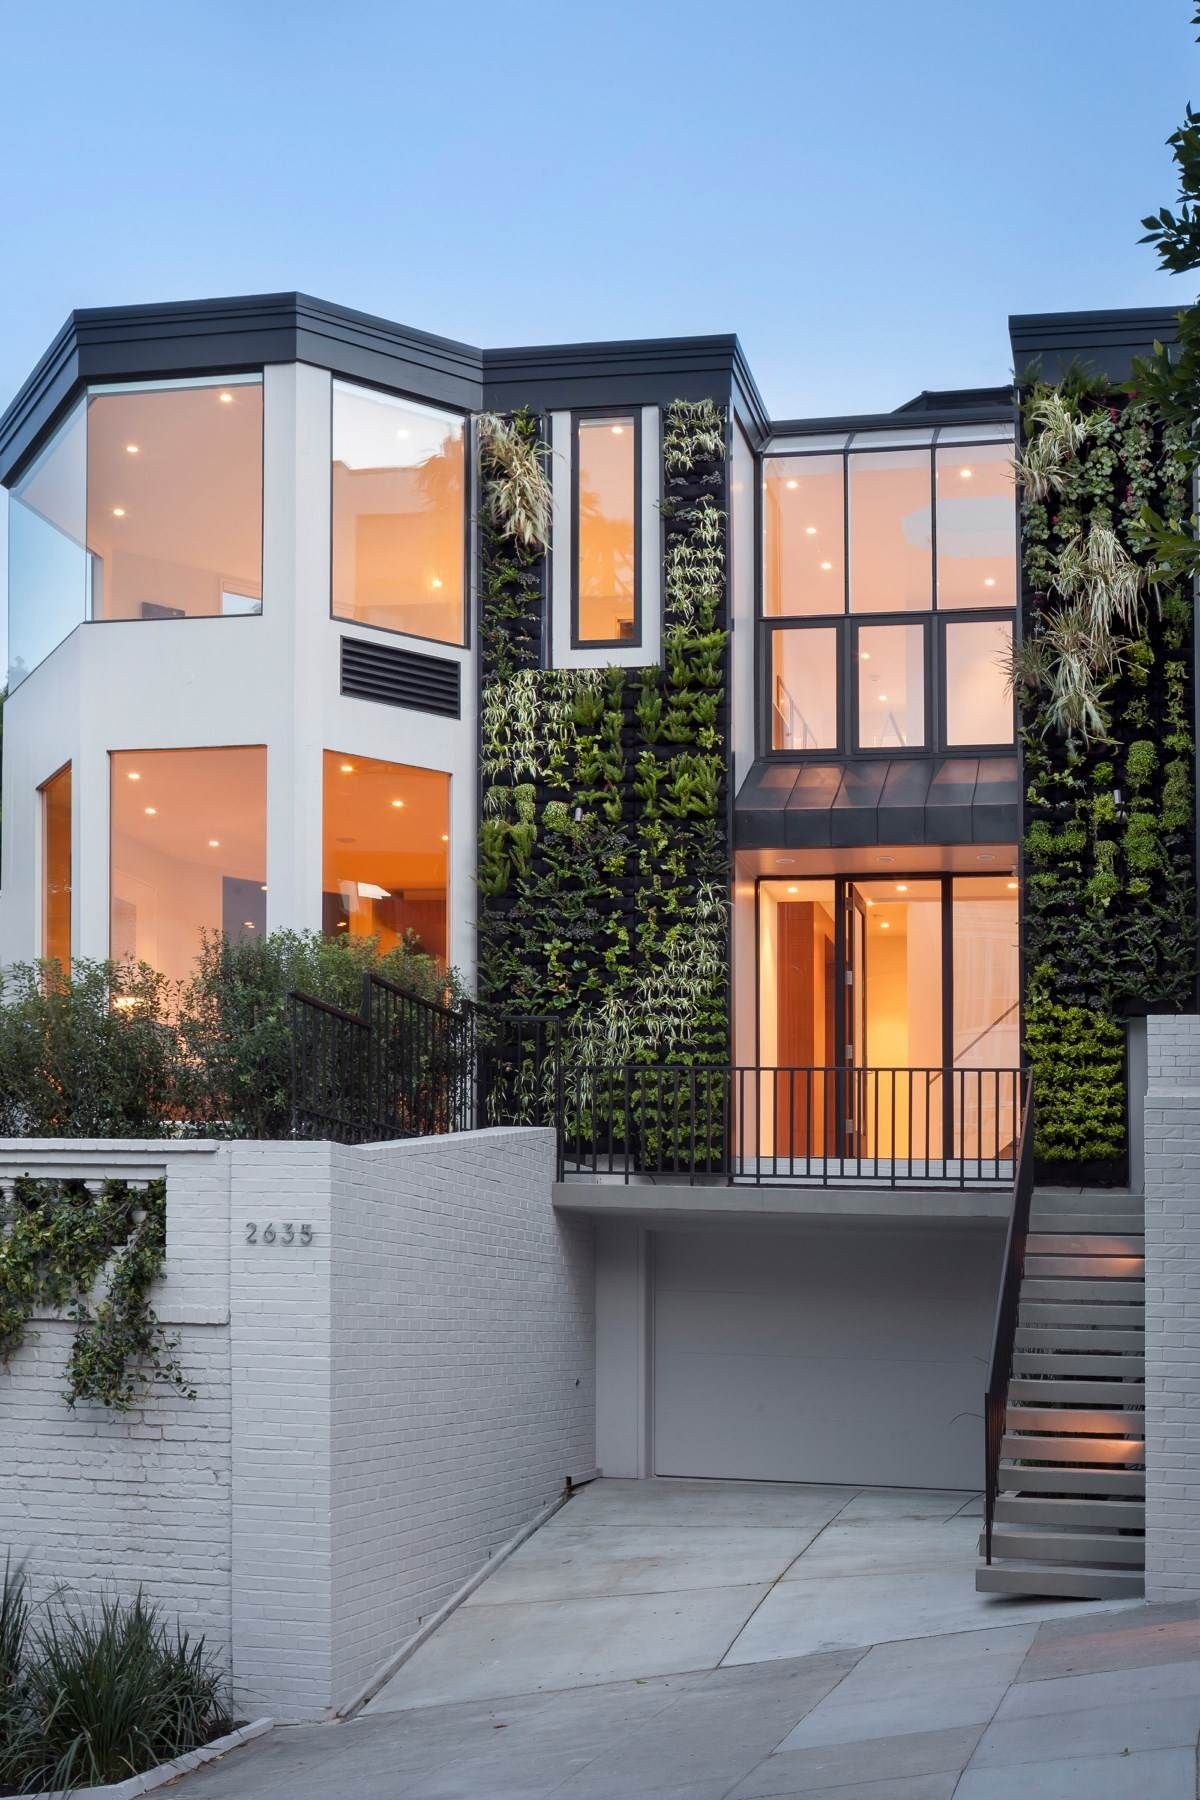 Modern Townhouse Townhouse Designs San Francisco: 2635 Broadway St San Francisco, California, United States – Luxury Home For Sale